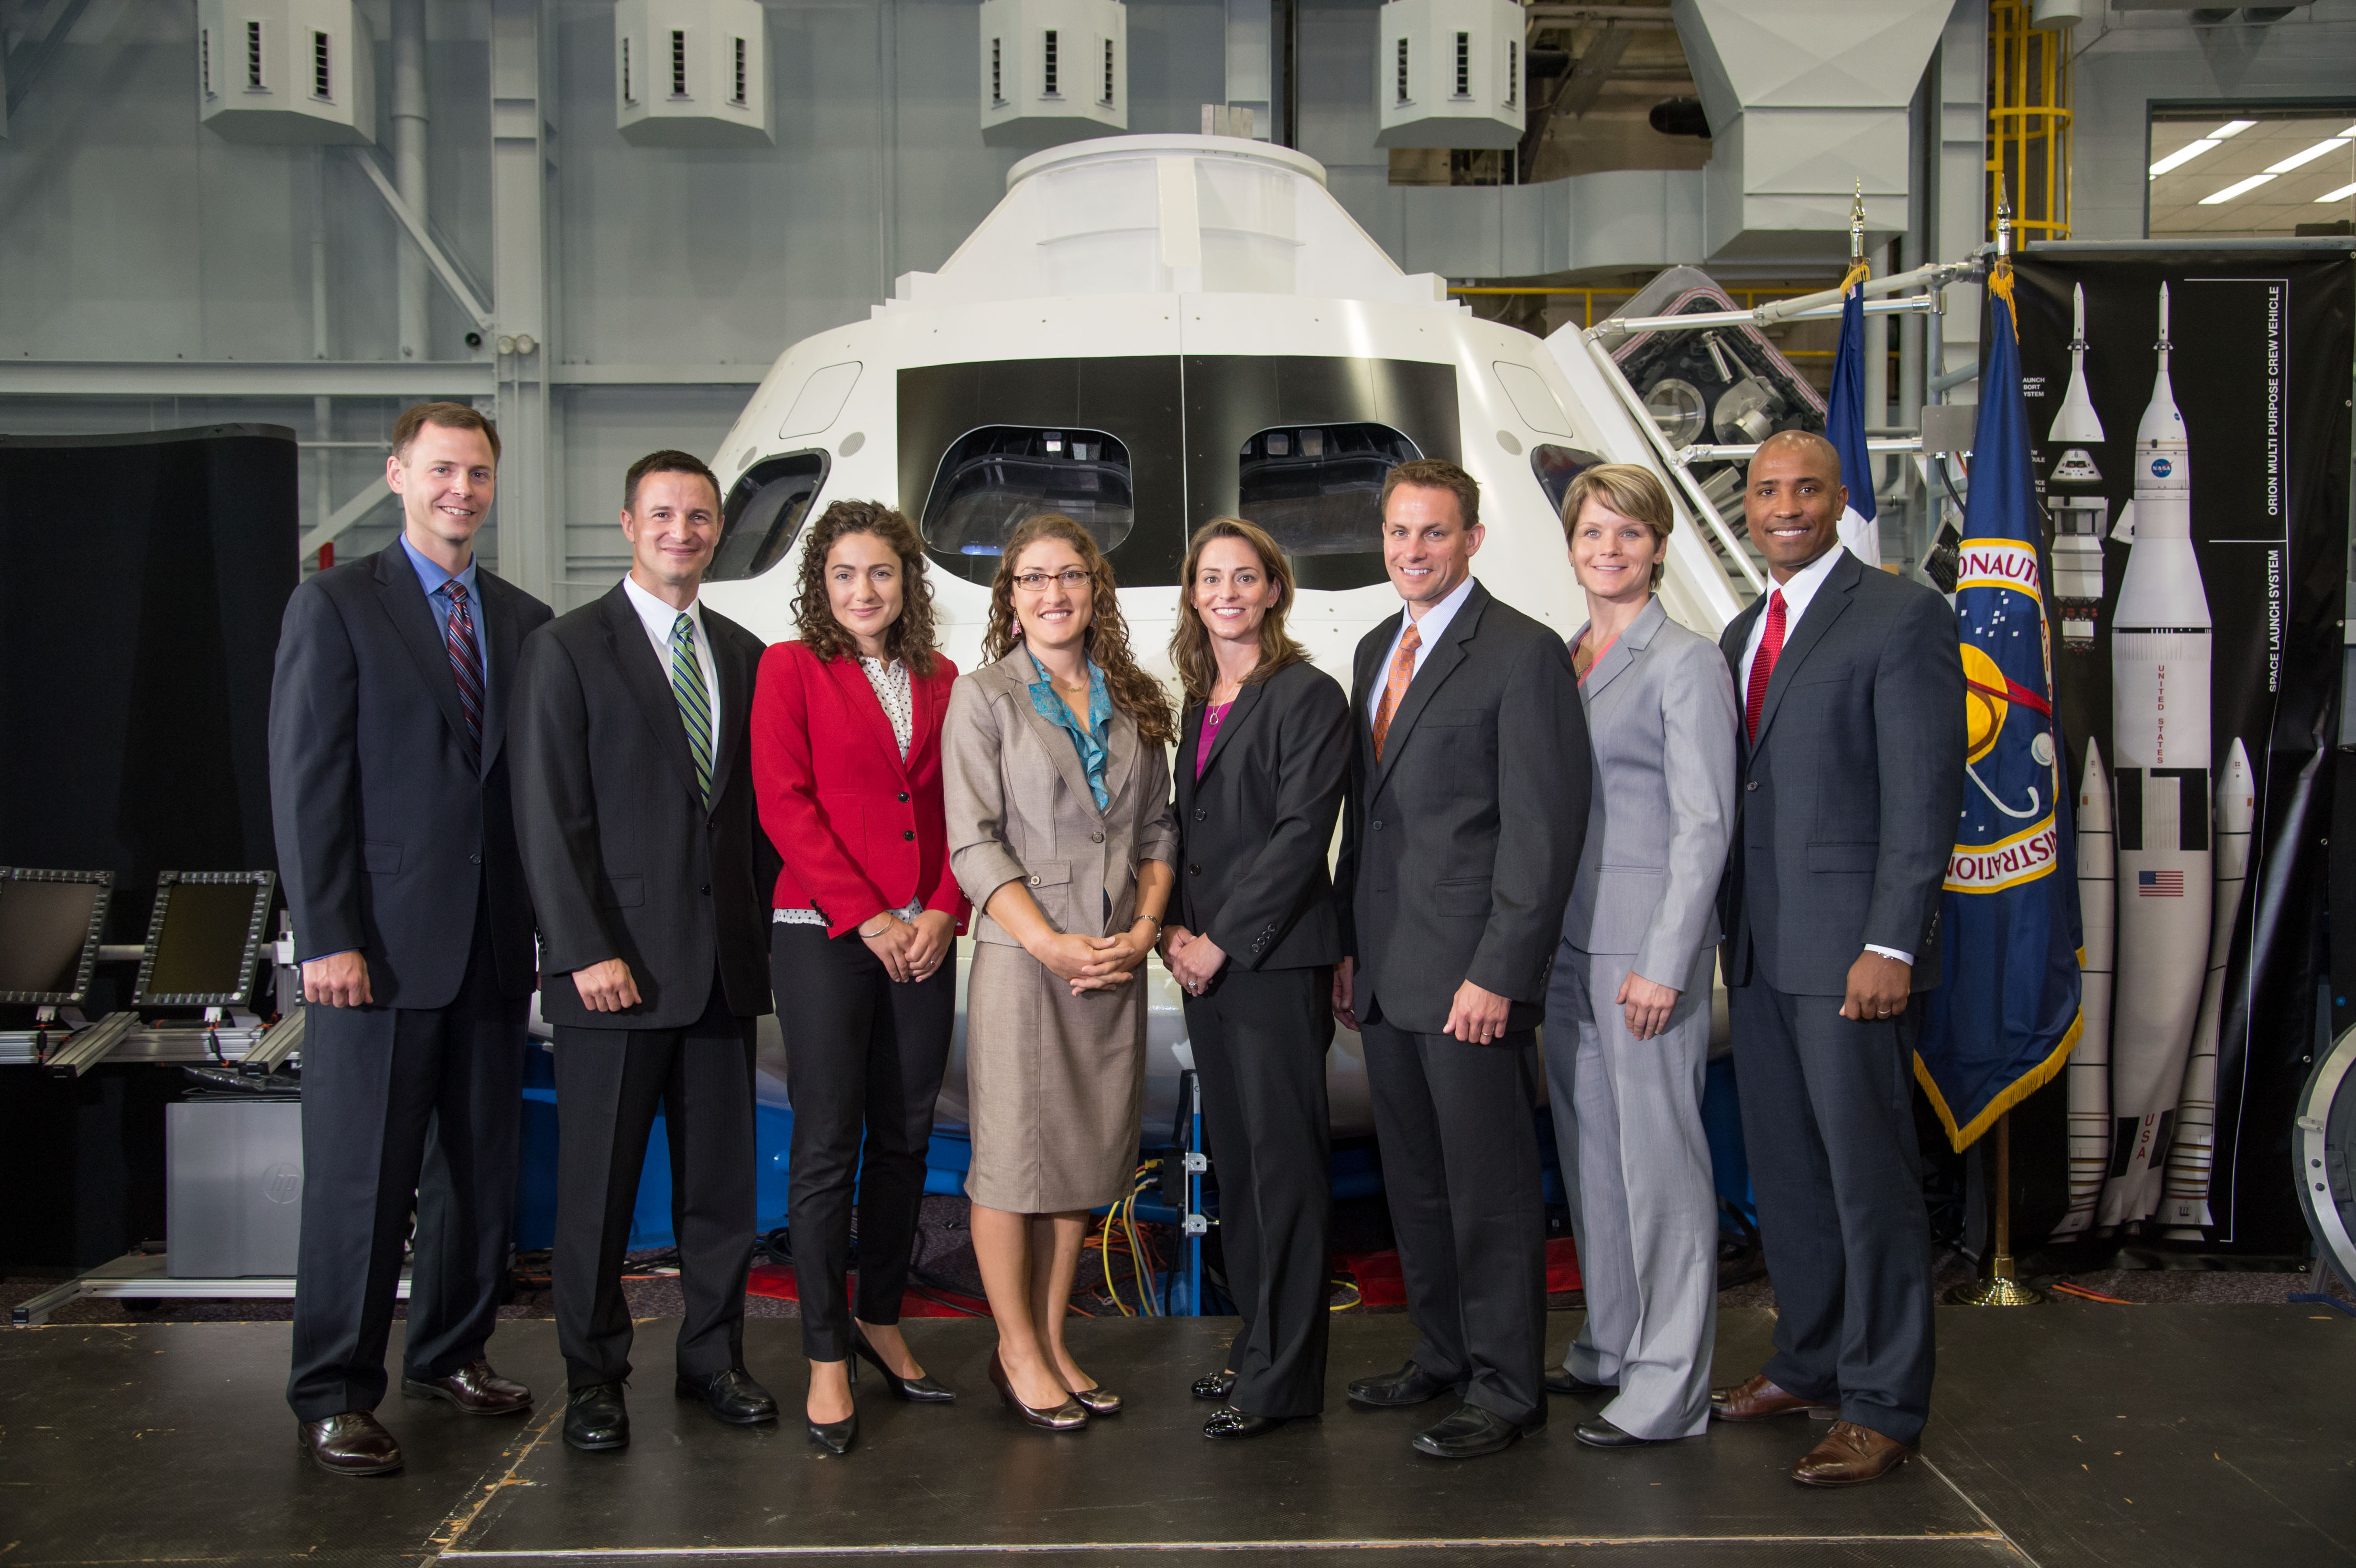 NASA's 2013 Astronaut Candidates Promote STEM Education at ...